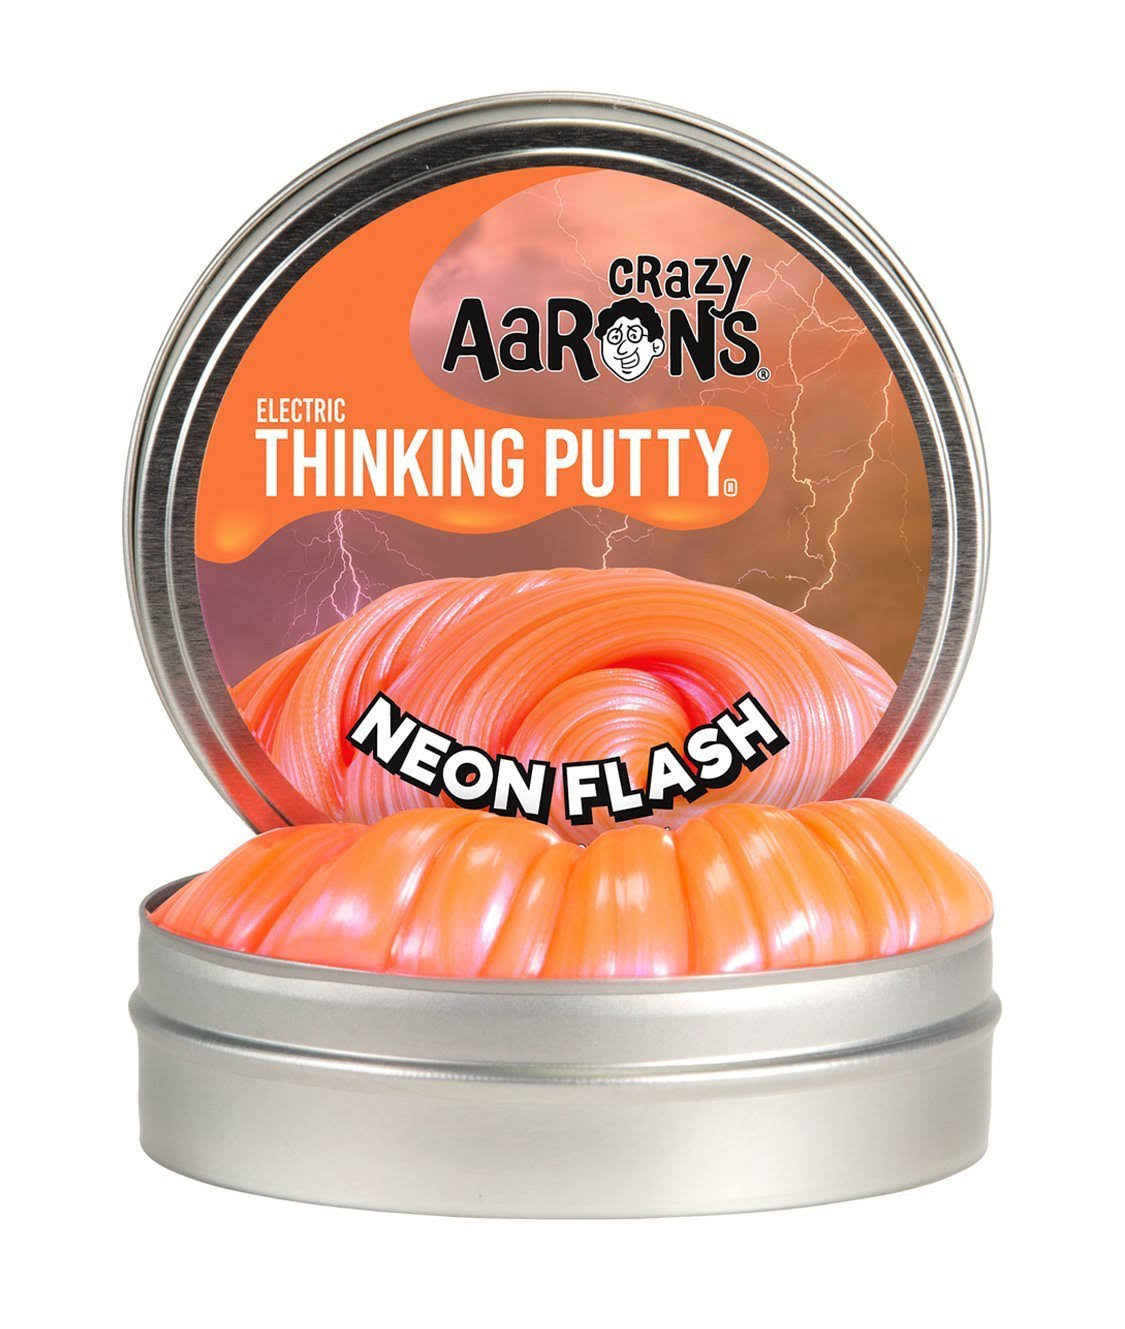 Crazy Aaron's Neon Flash Mini Thinking Putty